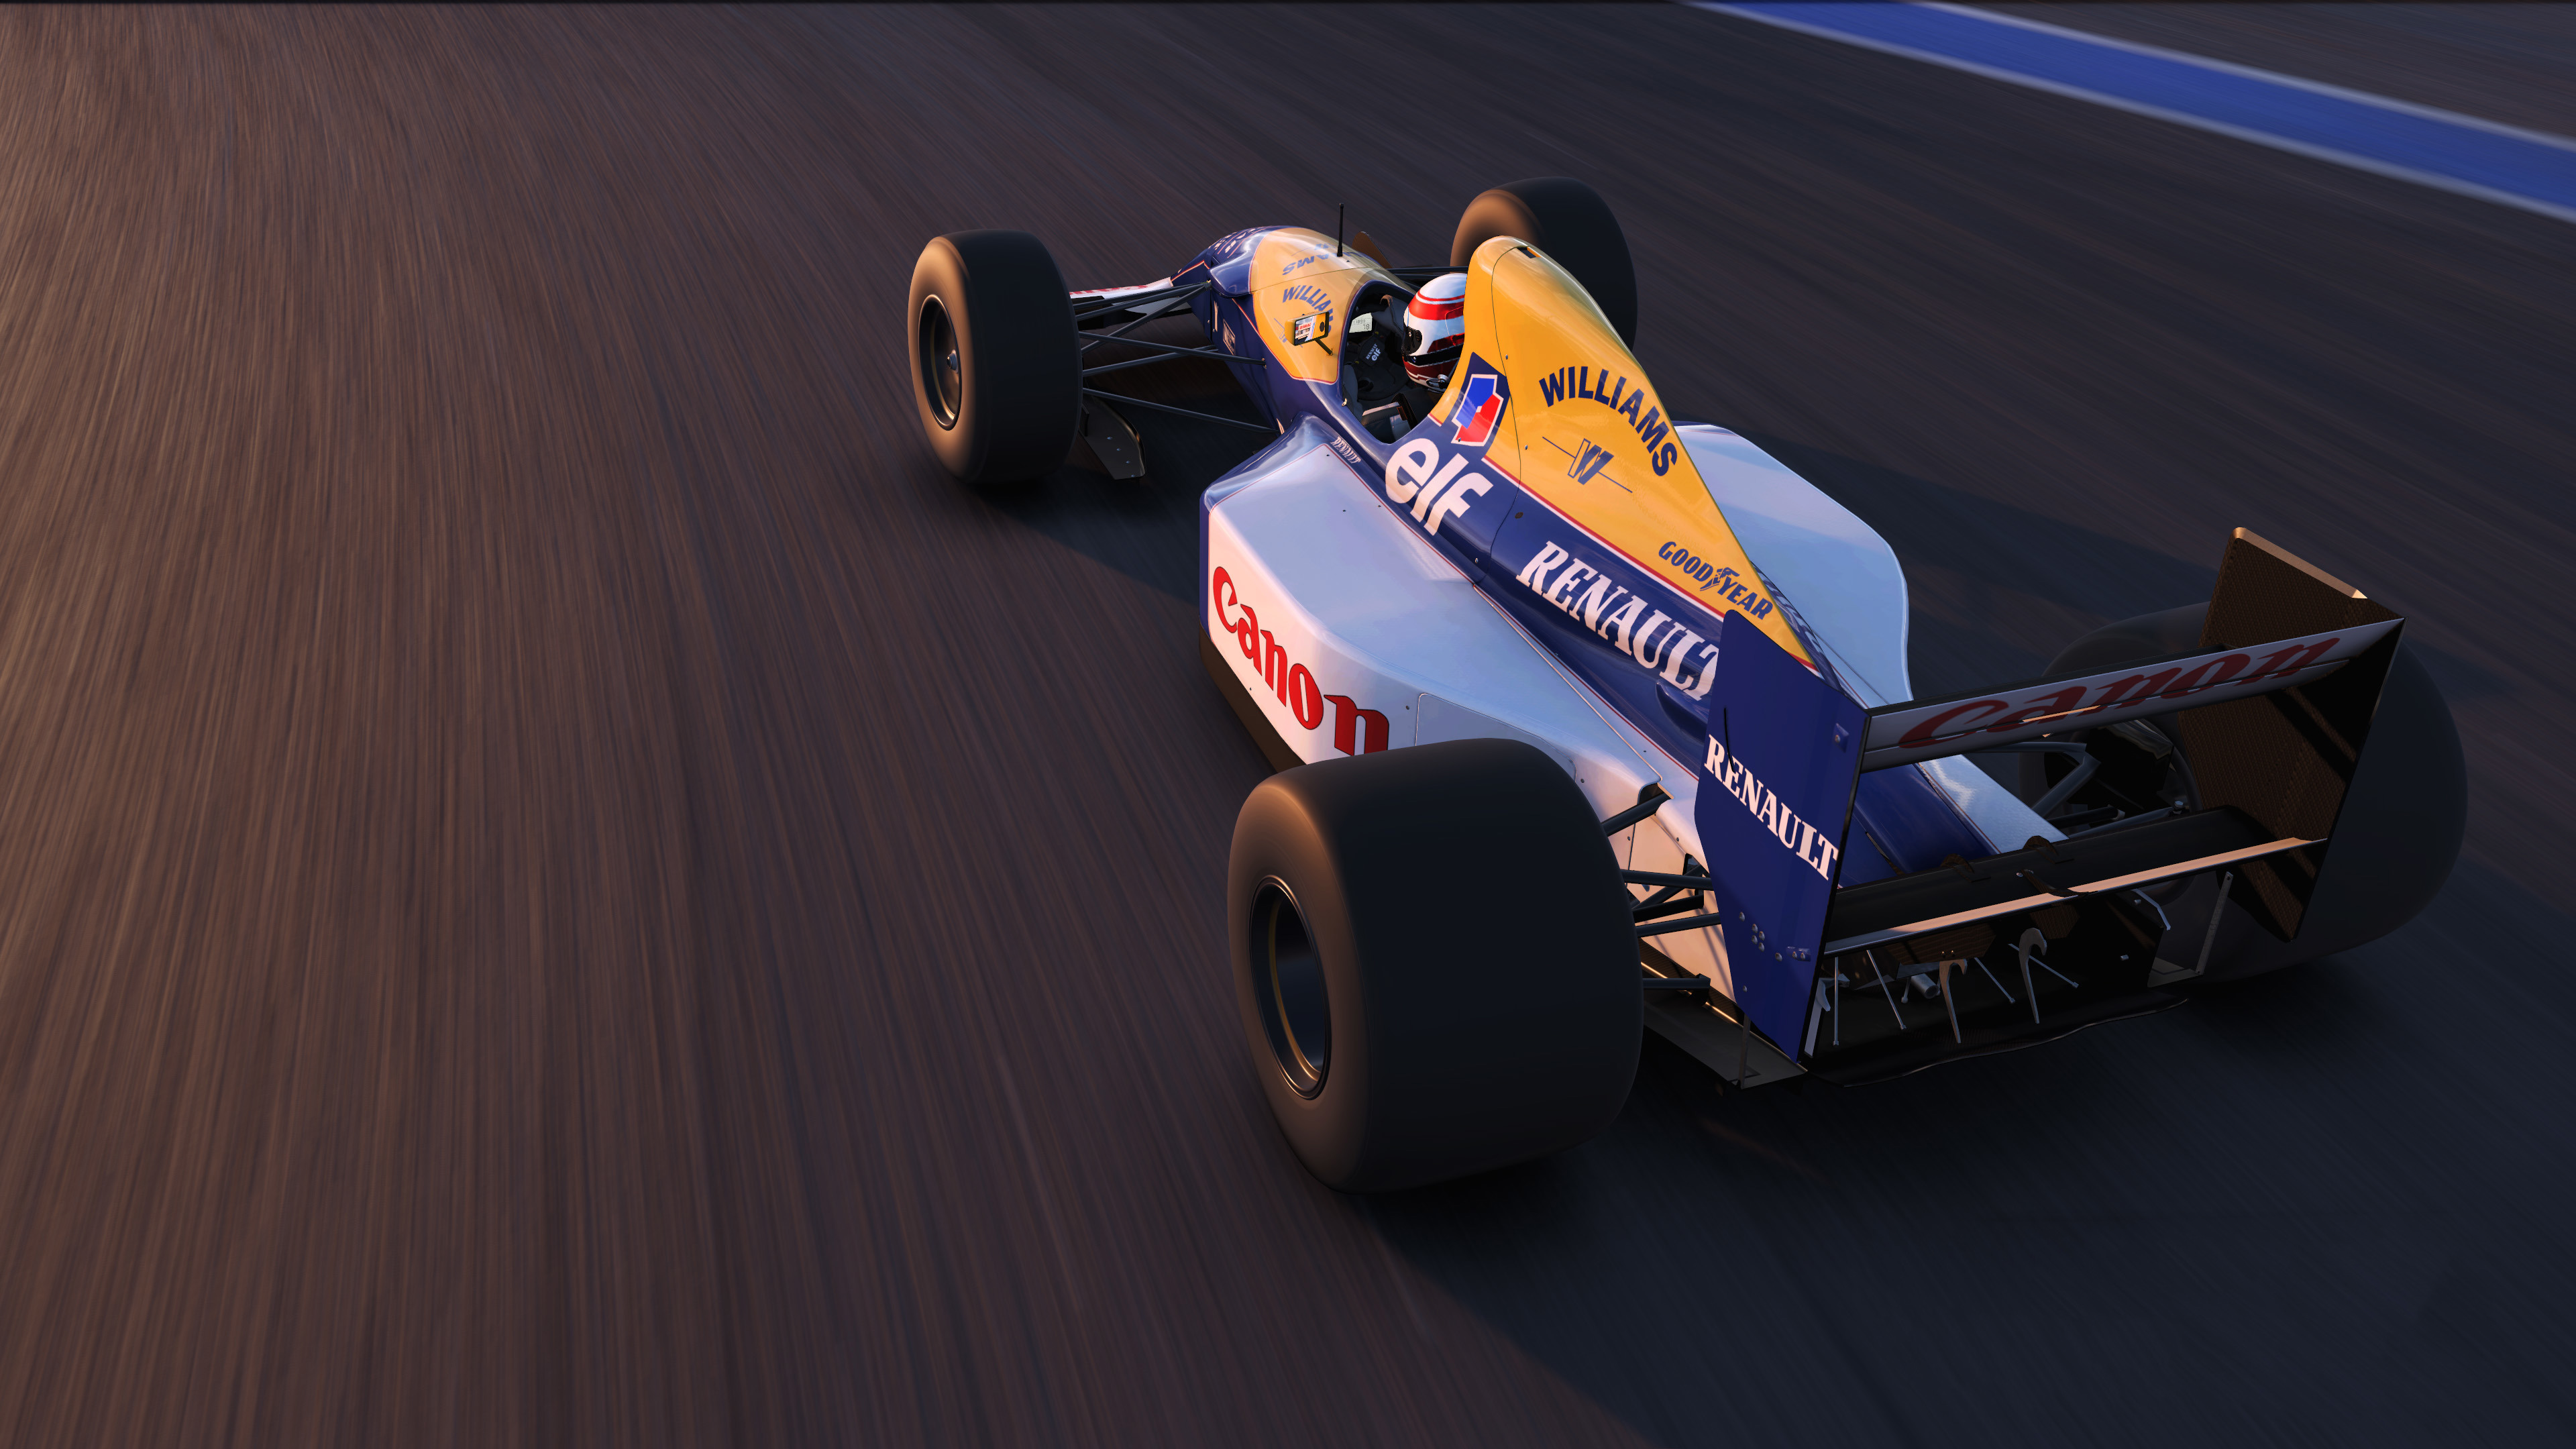 f1 2018 video game 4k 1537691164 - F1 2018 Video Game 4k - hd-wallpapers, games wallpapers, f1 wallpapers, 4k-wallpapers, 2018 games wallpapers